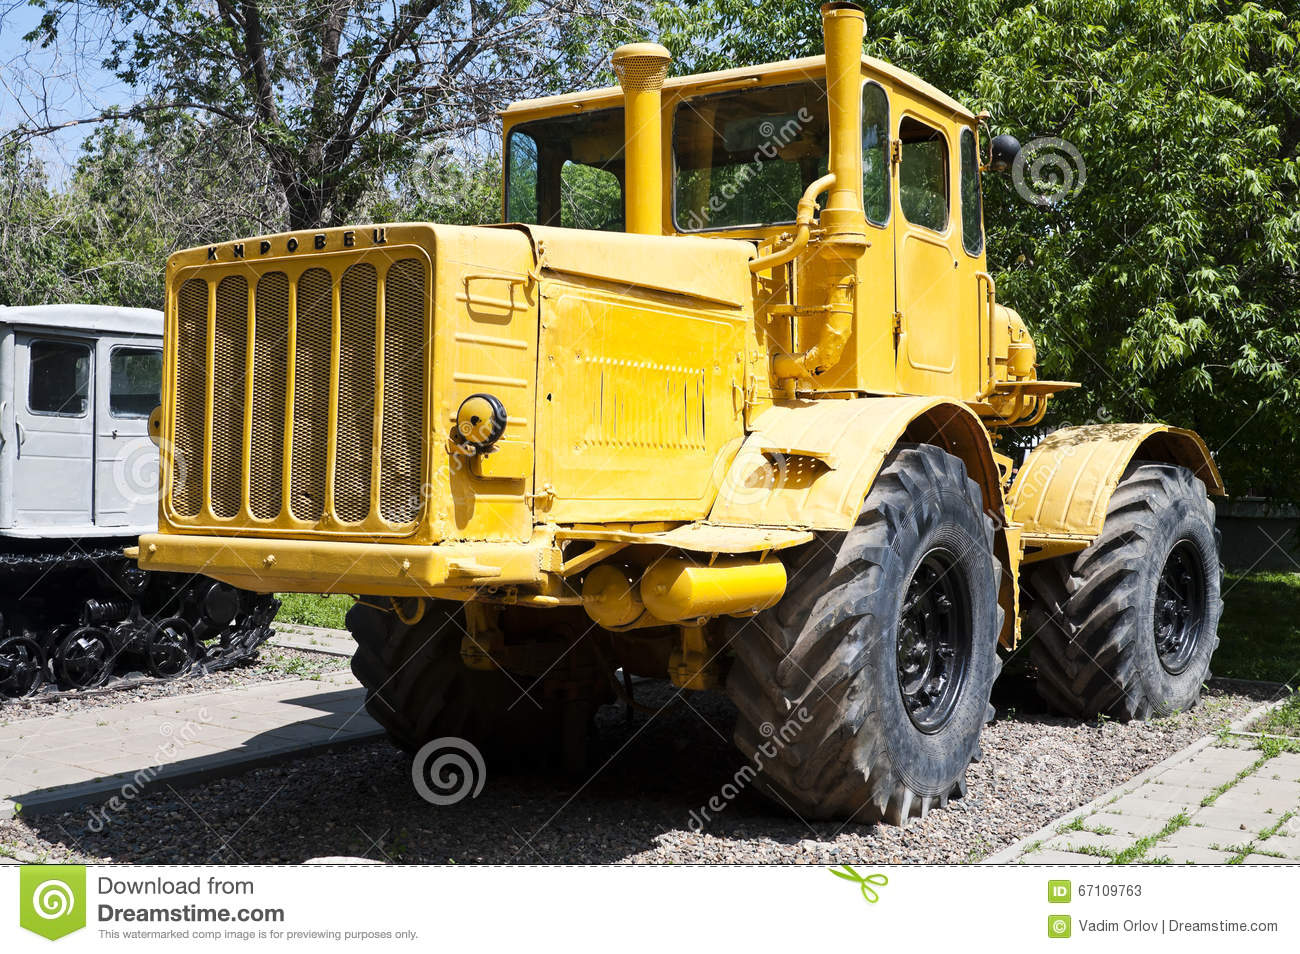 russian tractor k 700 kirovets stock image image of wheeled equipment 67109763. Black Bedroom Furniture Sets. Home Design Ideas